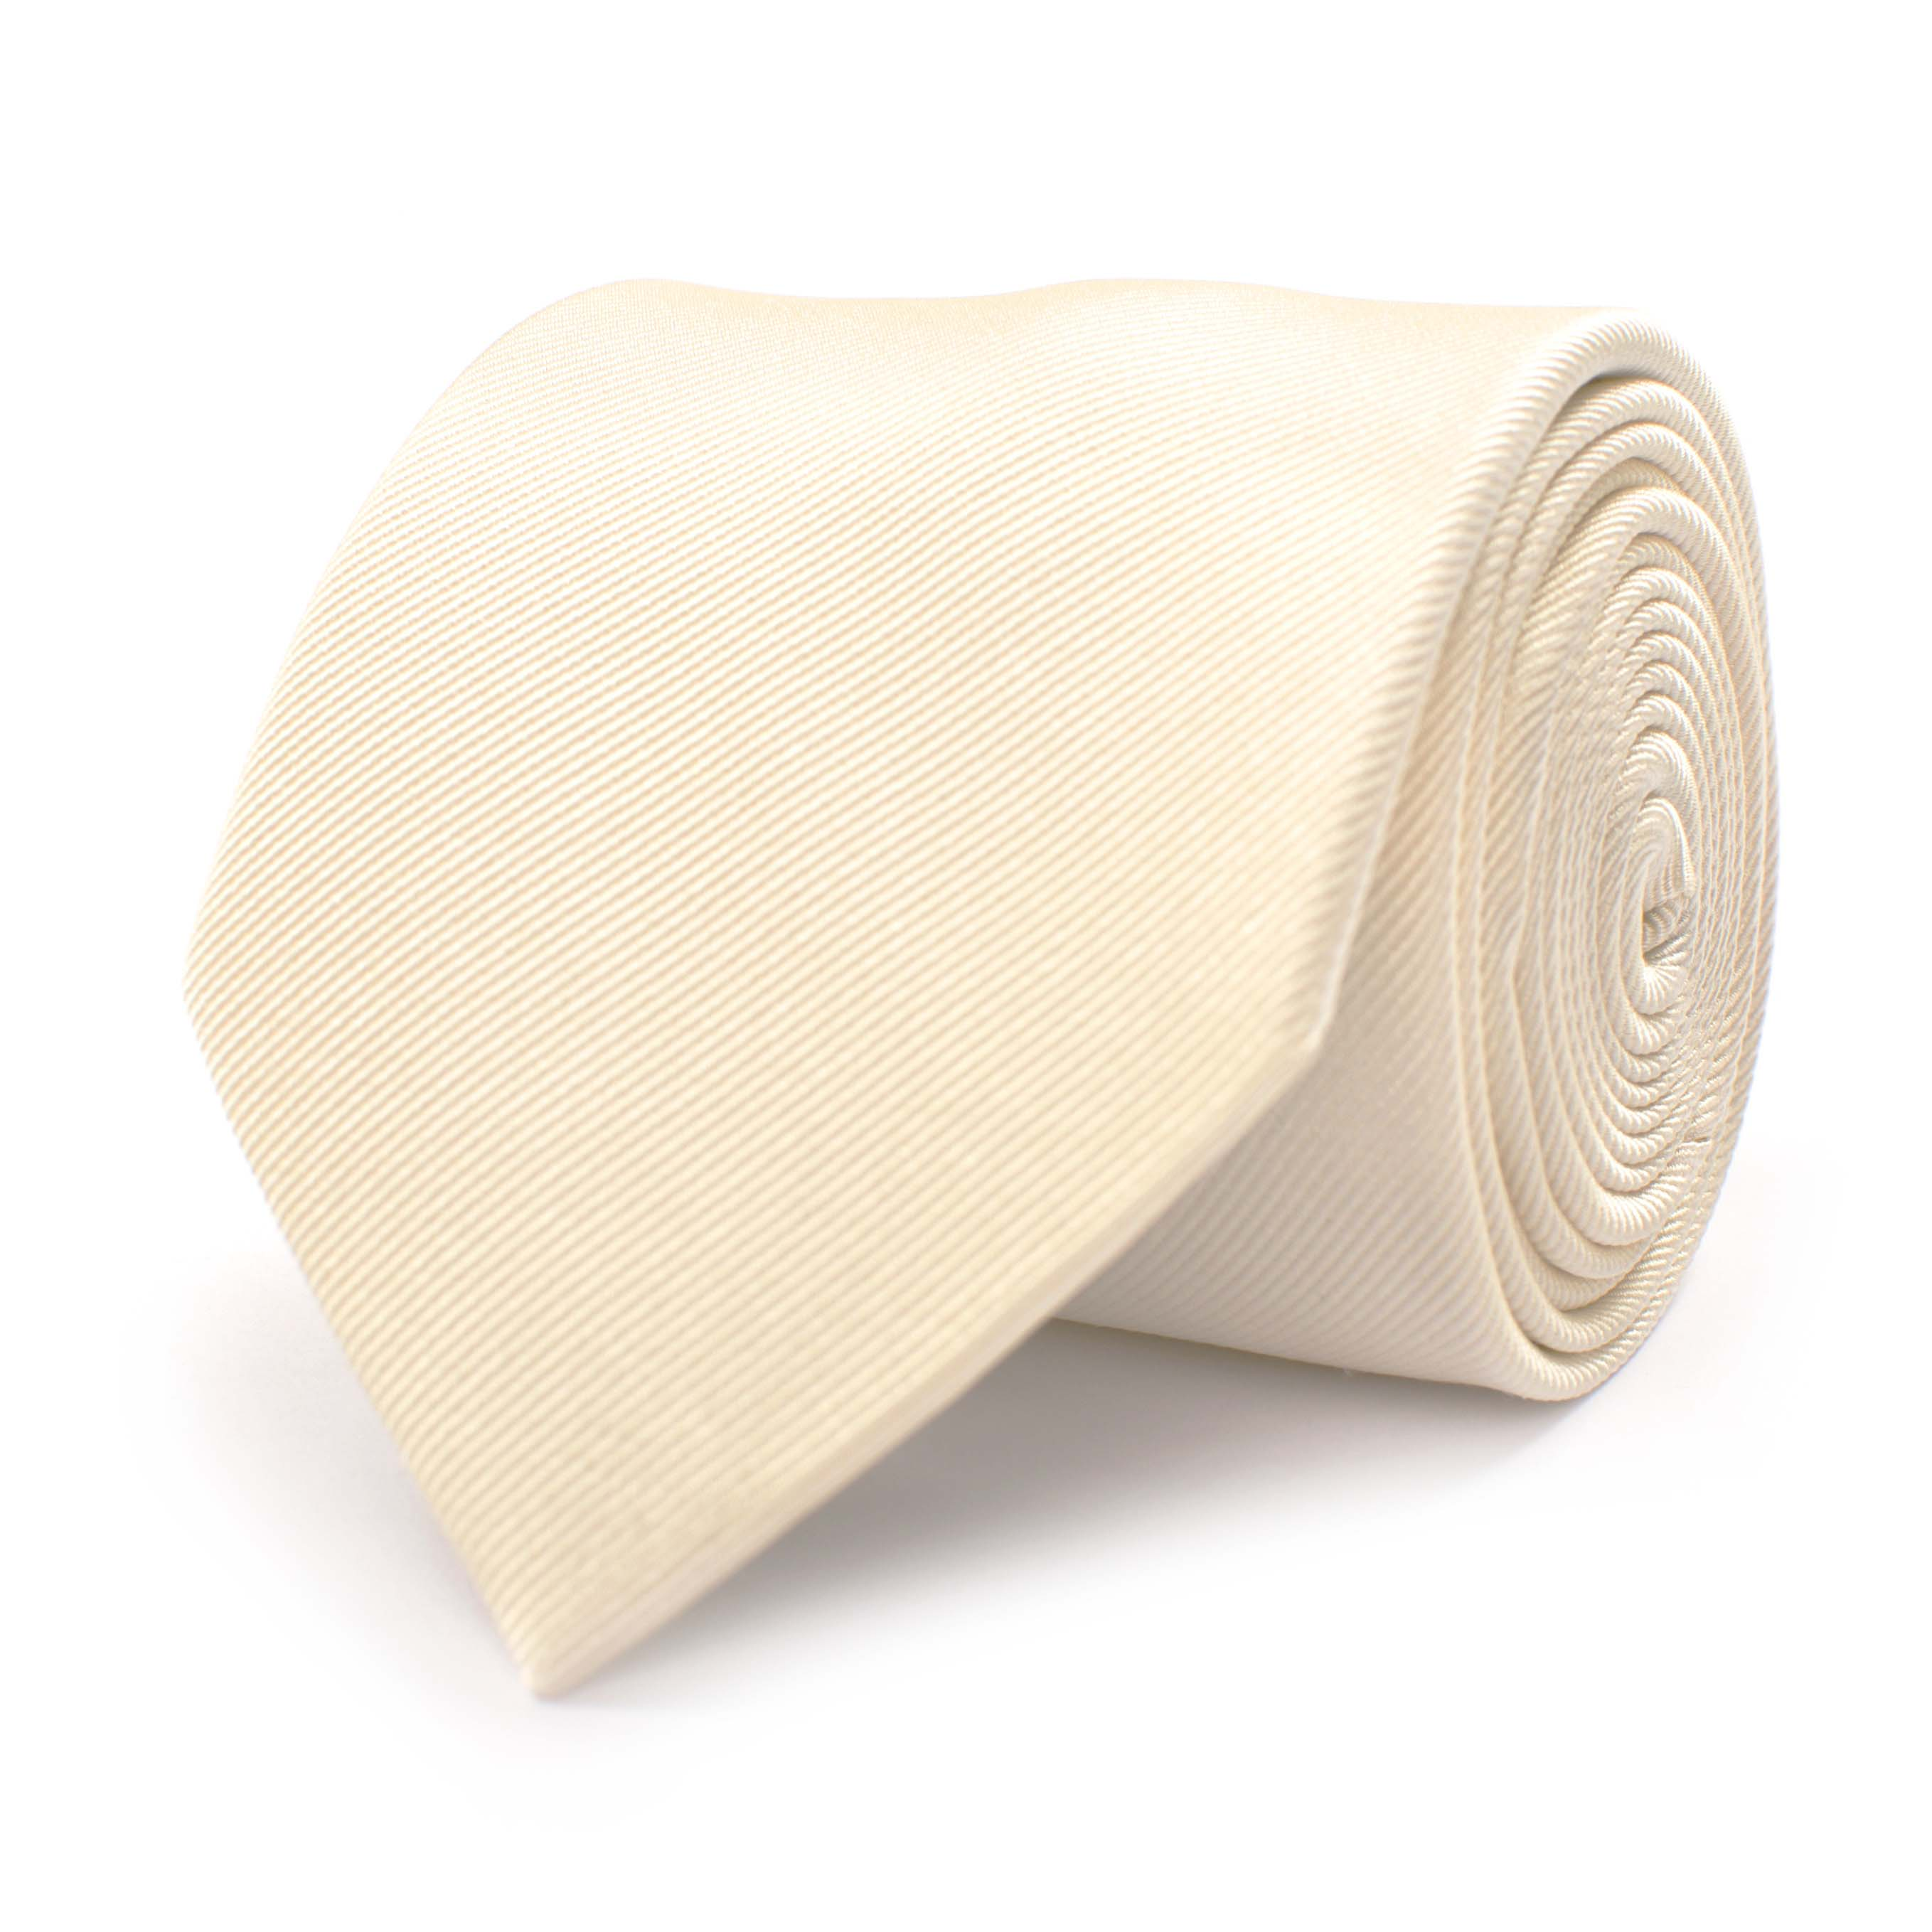 Tie classic ribbed ivory